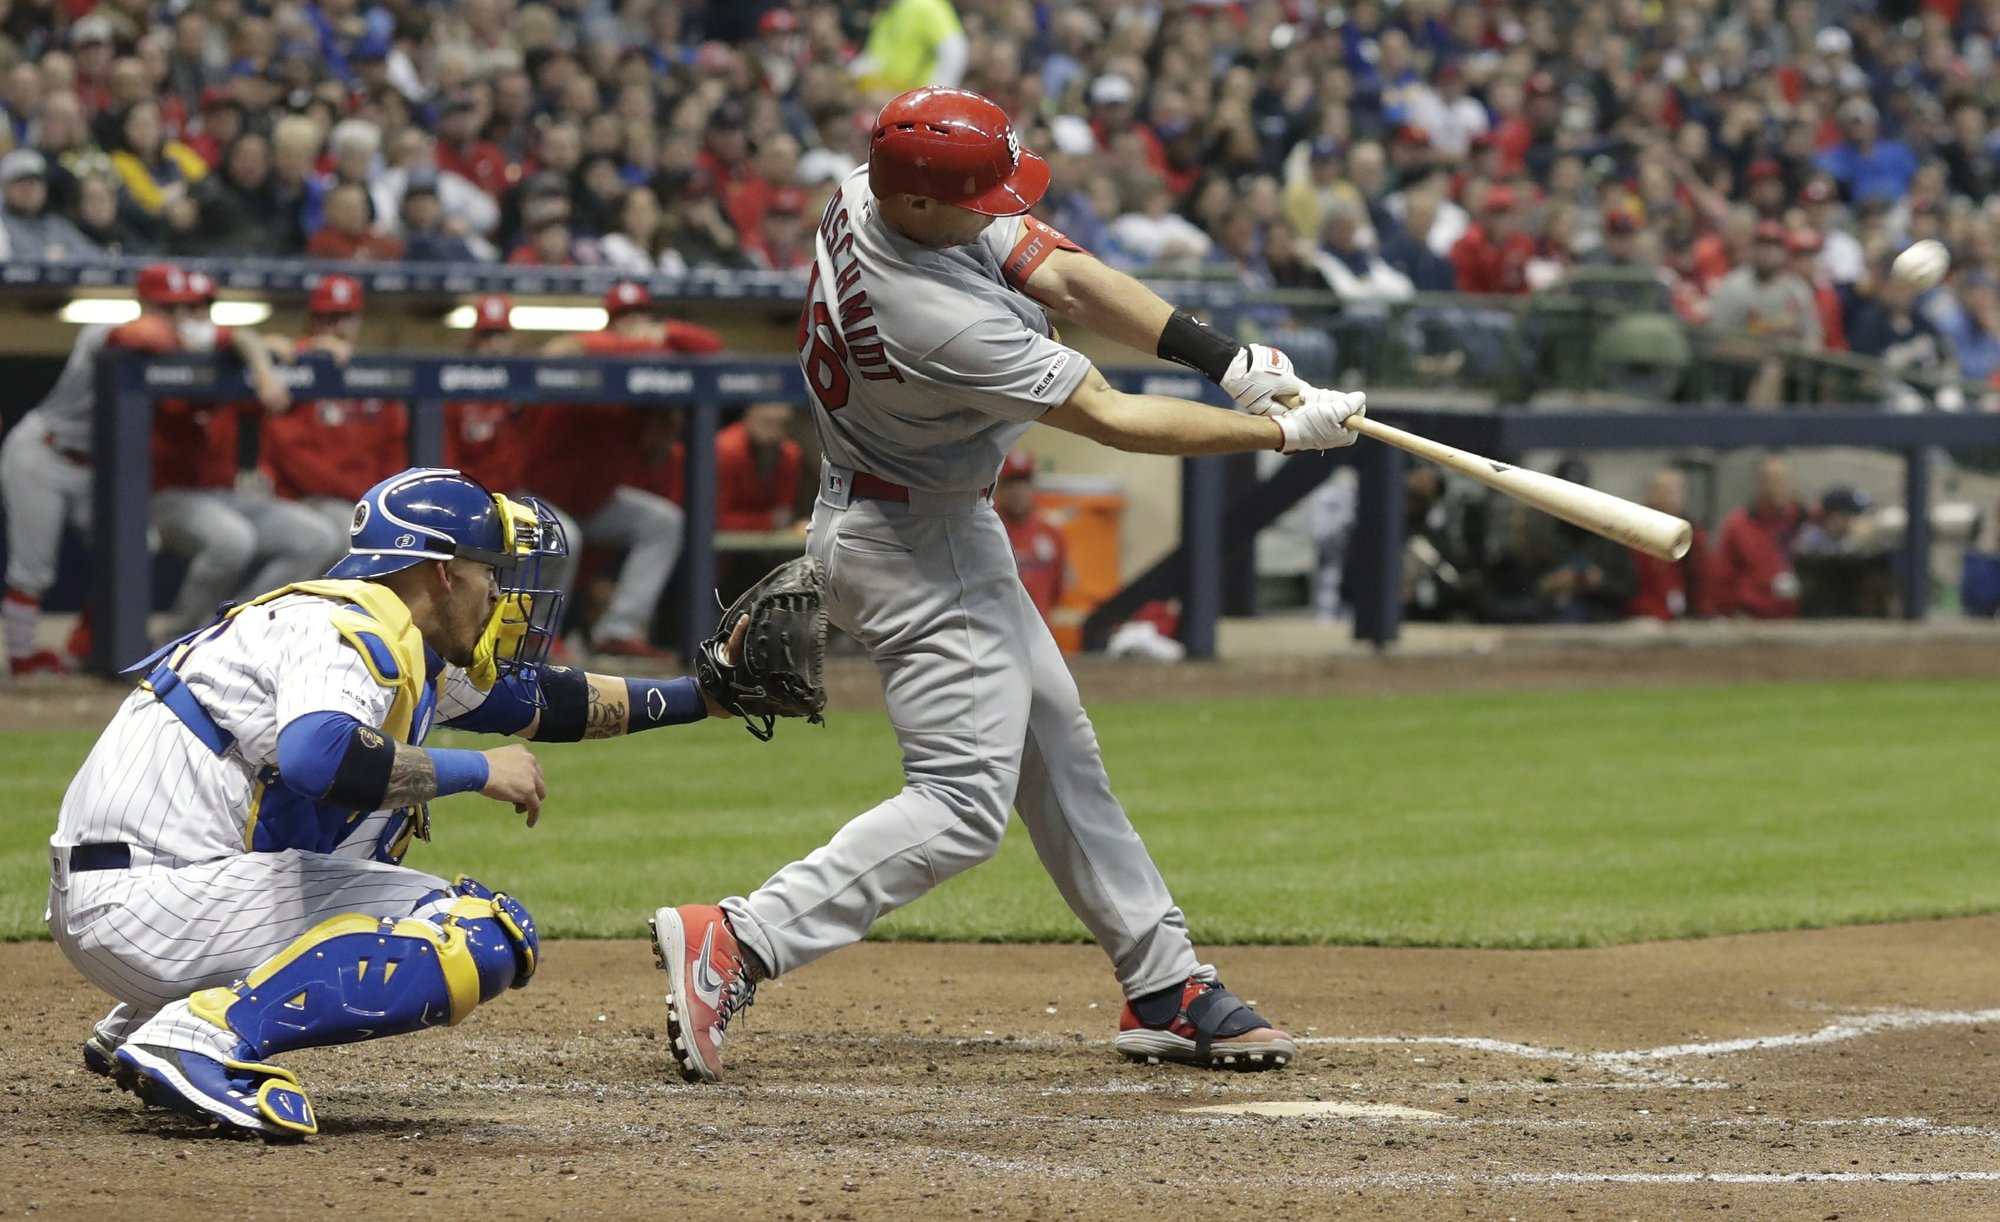 Cards' Goldschmidt hits 3 HRs, walked intentionally in 9th